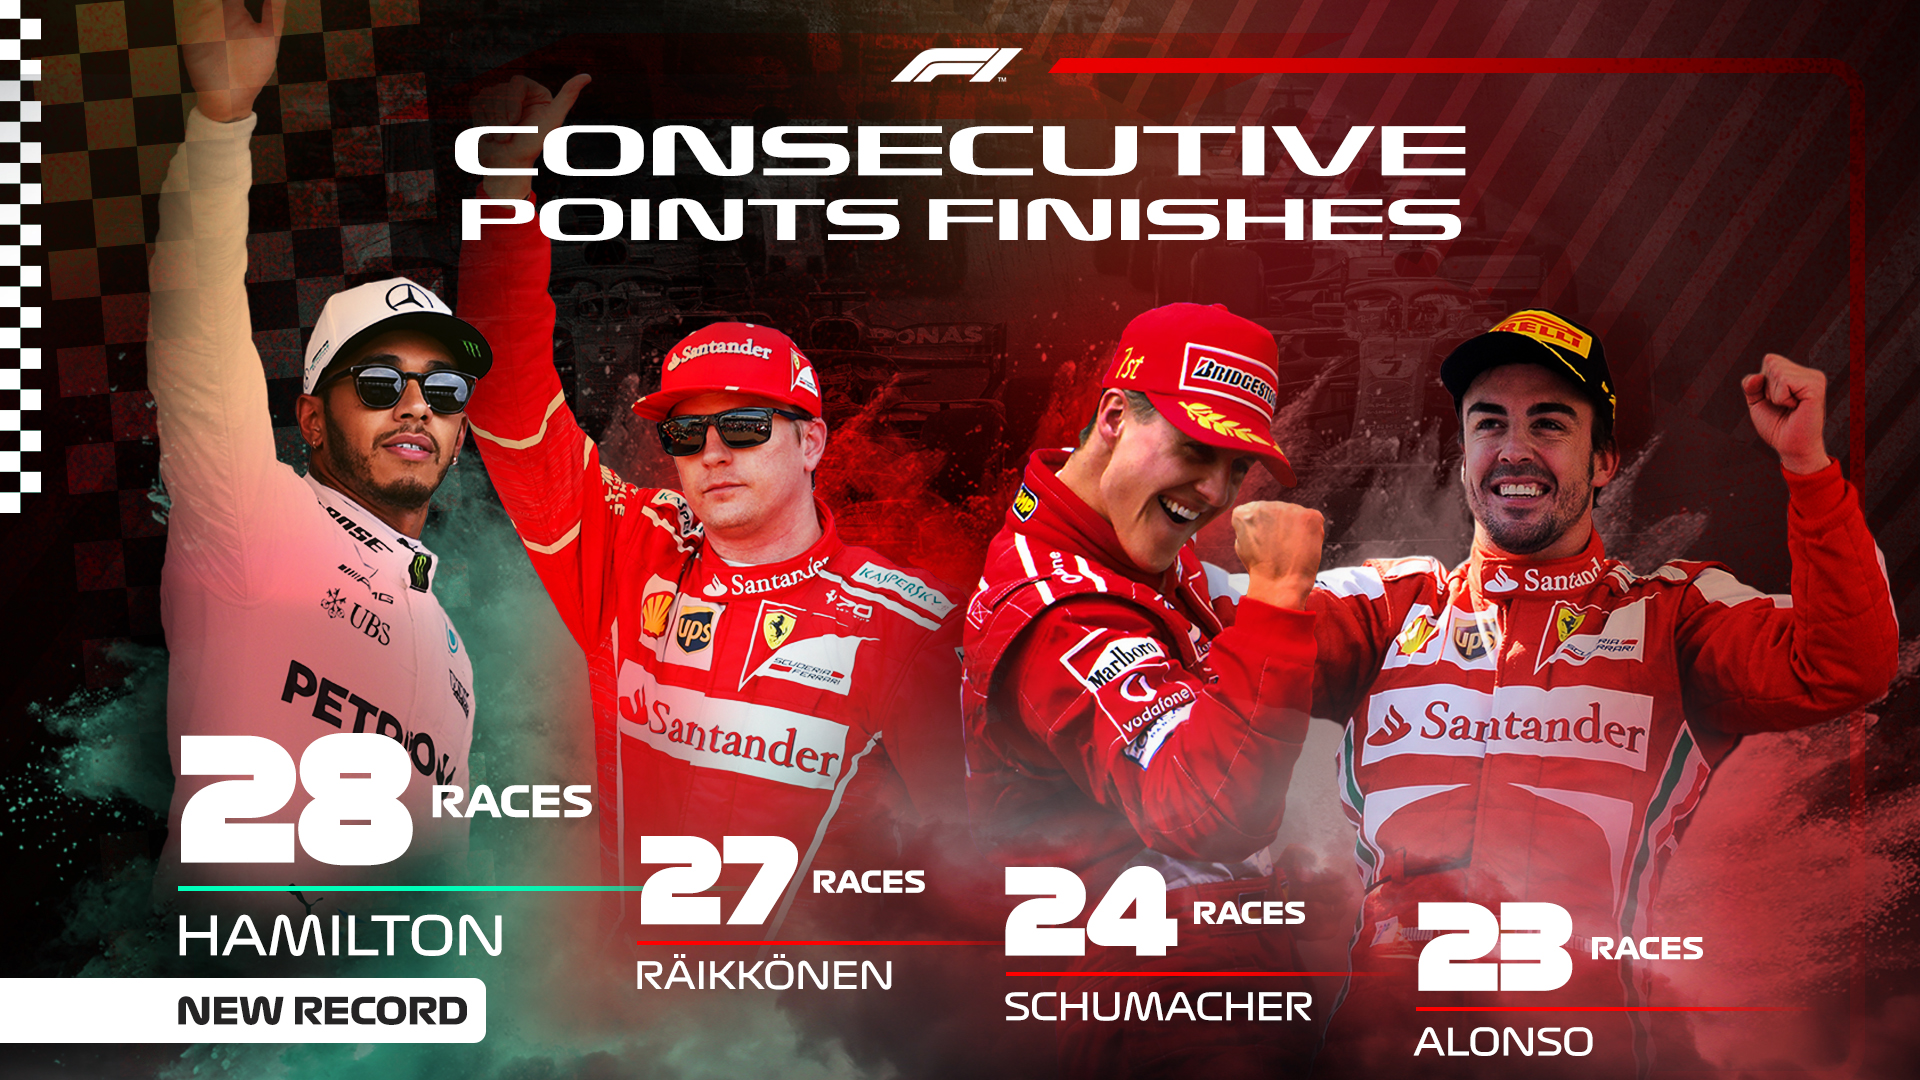 F1 Consecutive Points 1920x1080